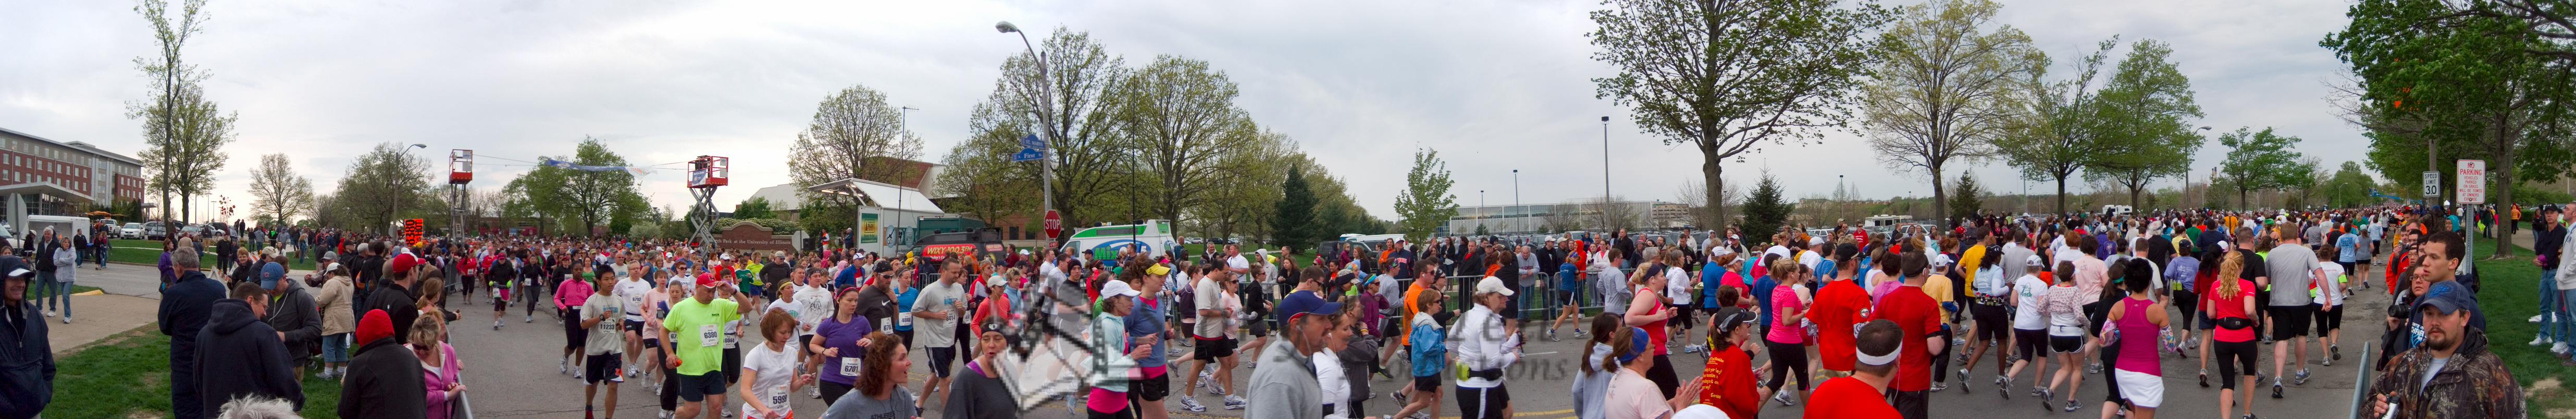 p77-1-p77-8half.jpg  Illinois Marathon 2011 Starting Line